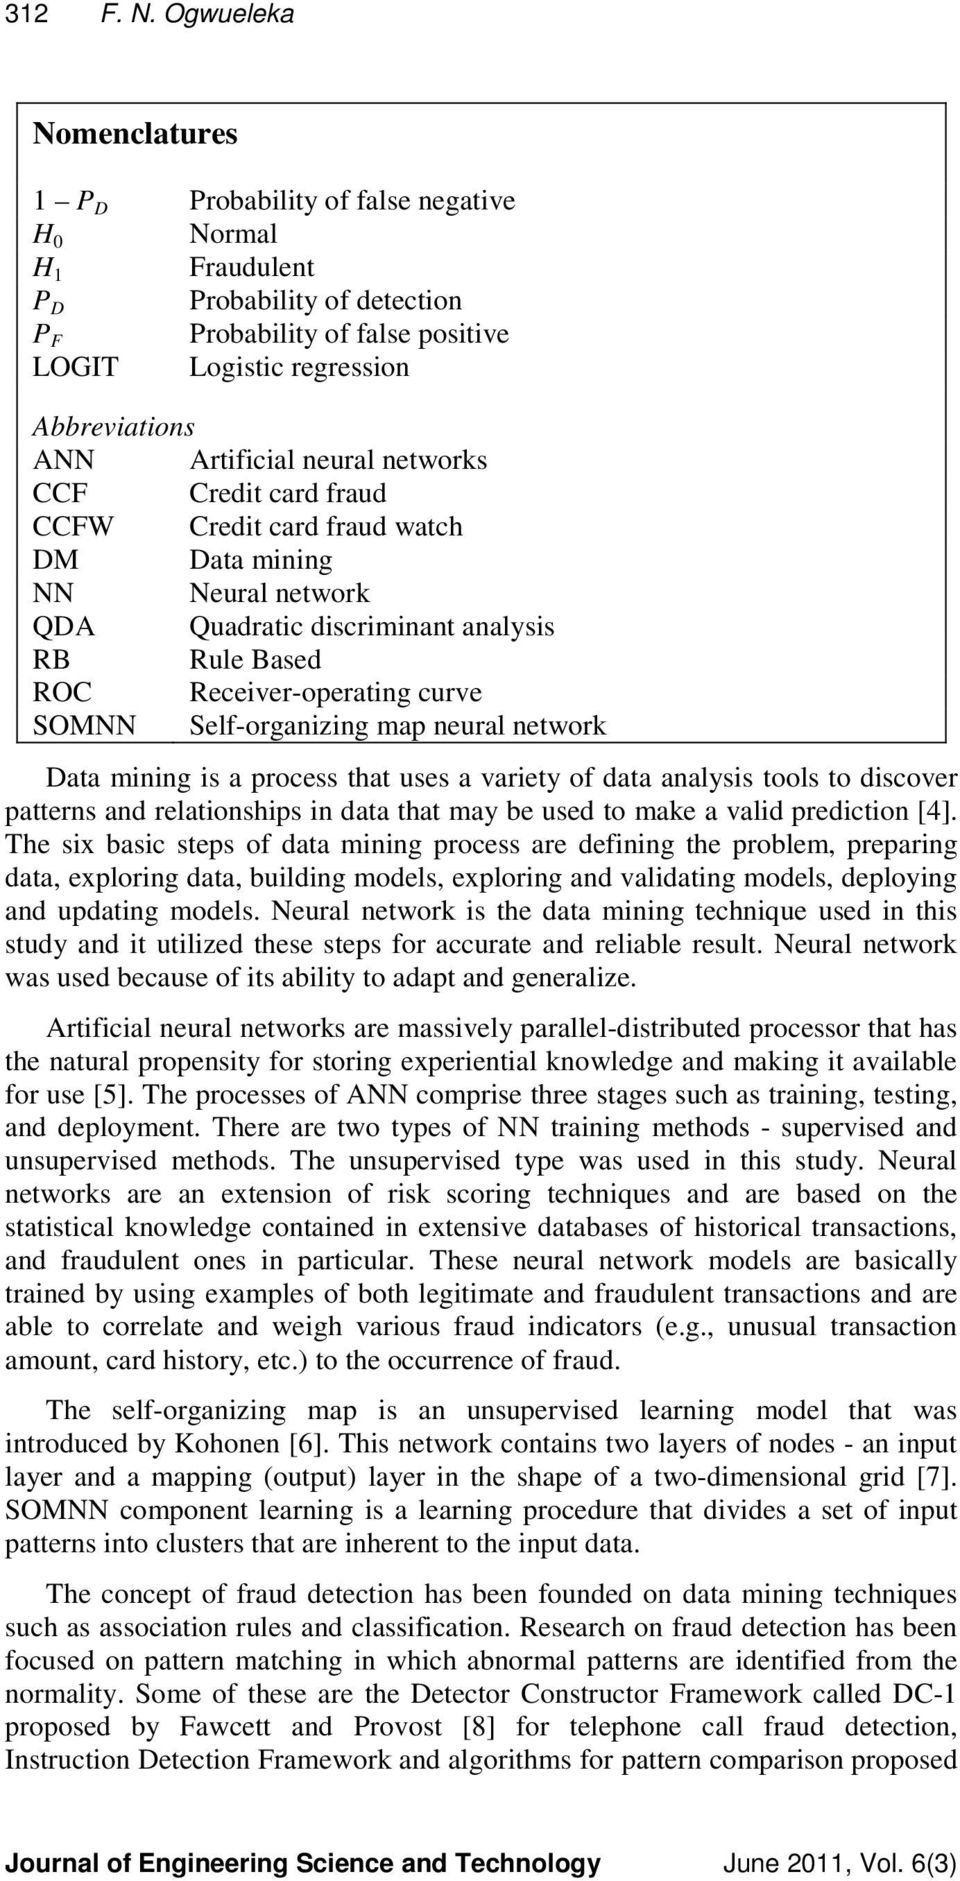 Artificial neural networks CCF Credit card fraud CCFW Credit card fraud watch DM Data mining NN Neural network QDA Quadratic discriminant analysis RB Rule Based ROC Receiver-operating curve SOMNN